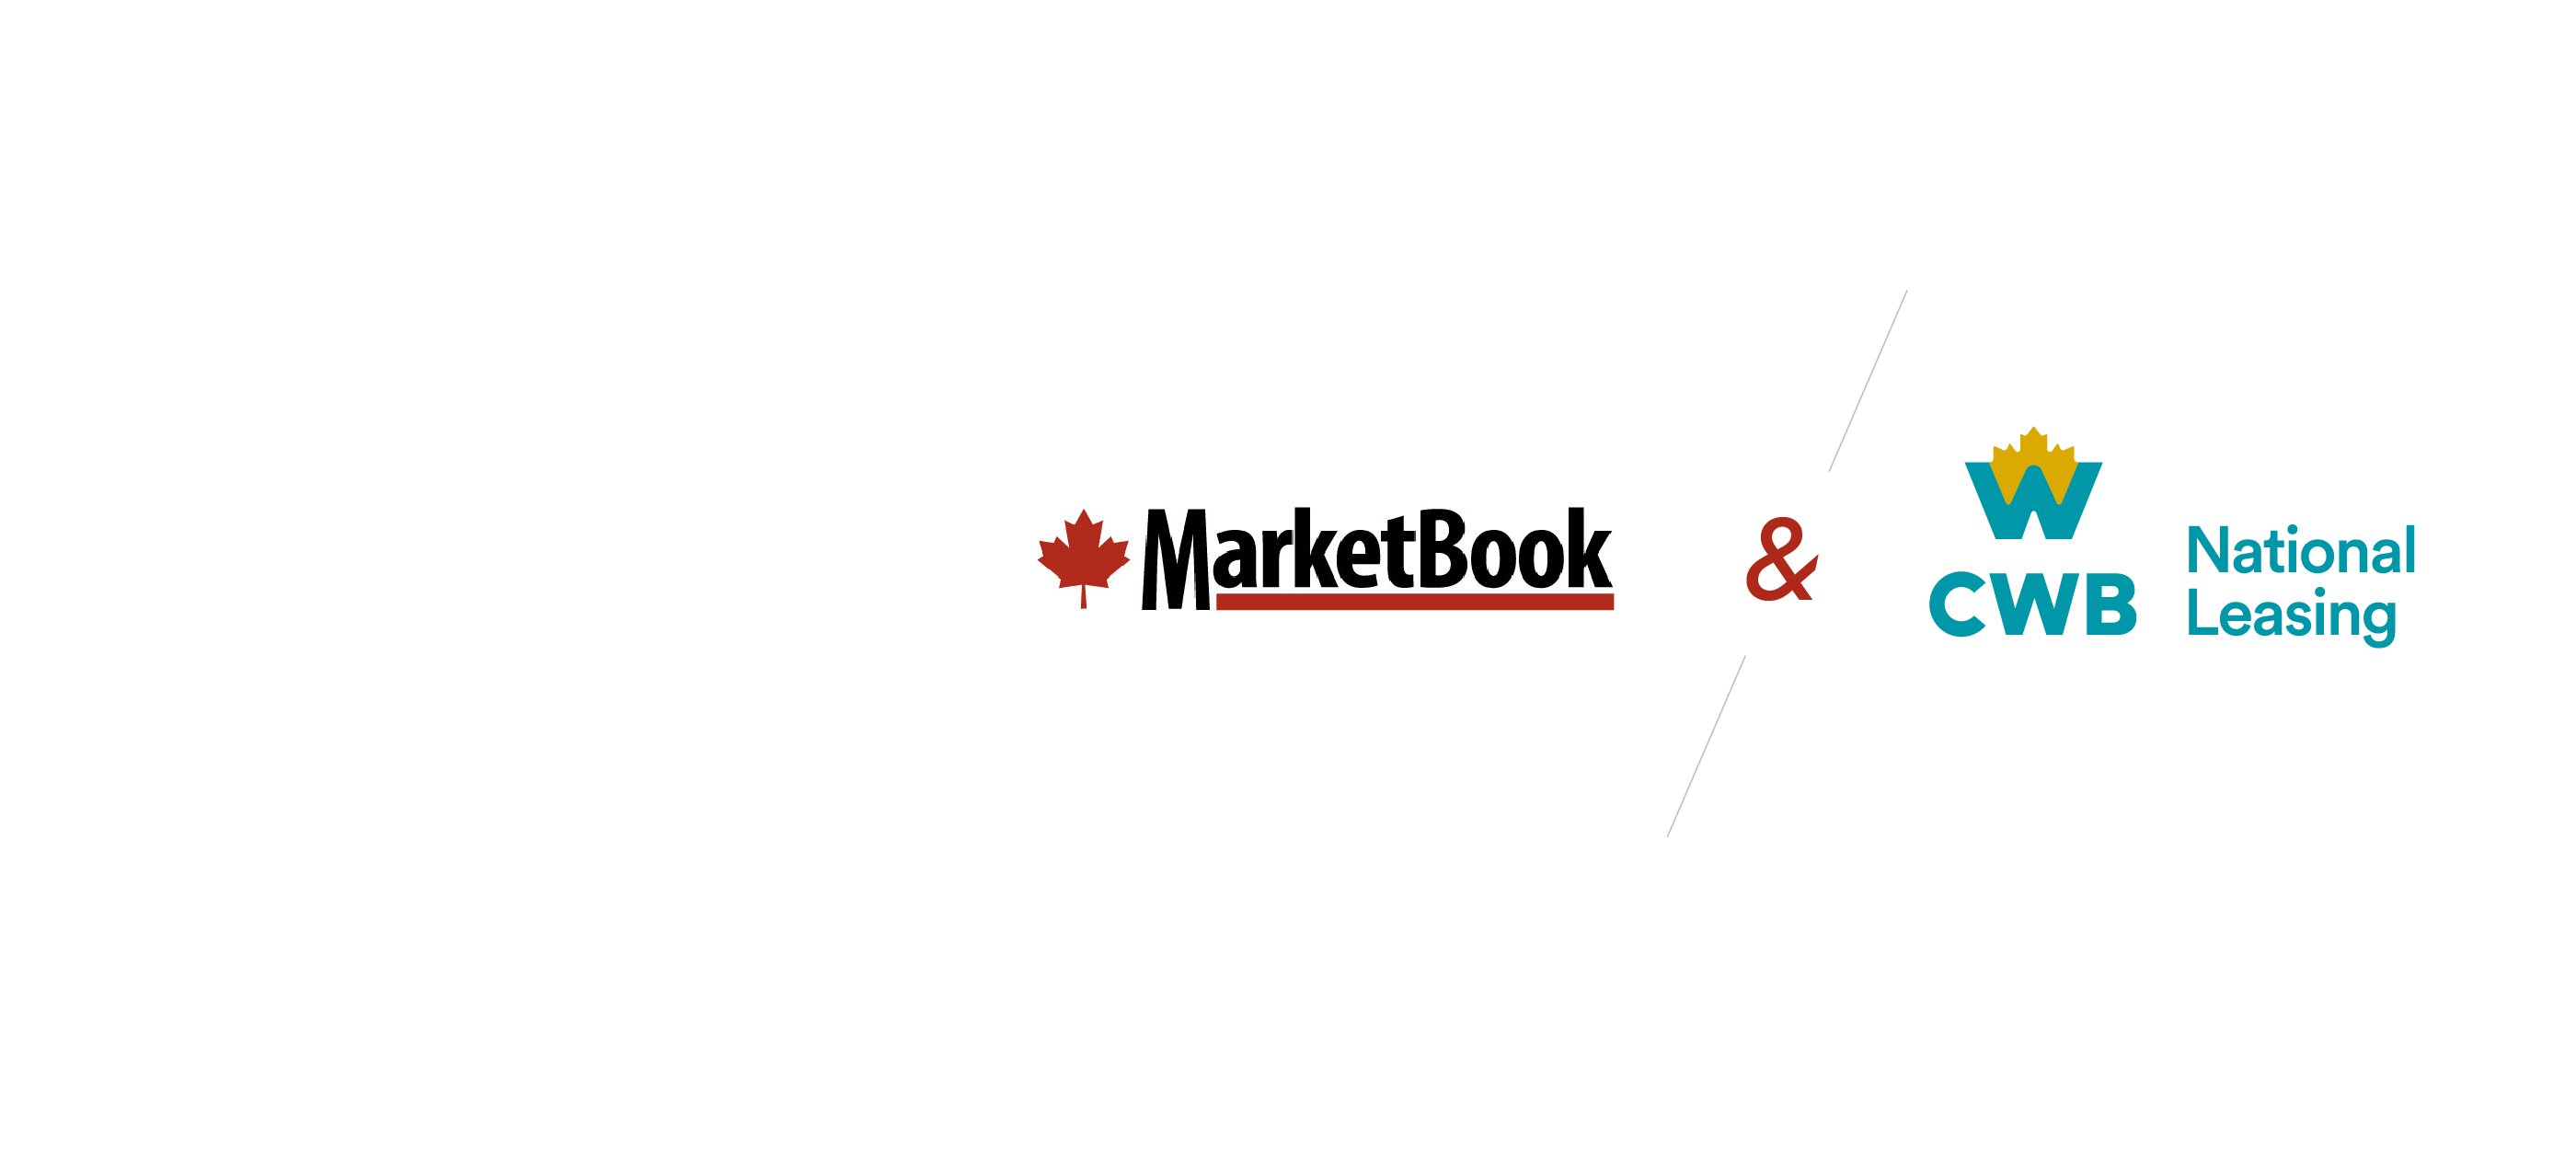 MarketBook partnership